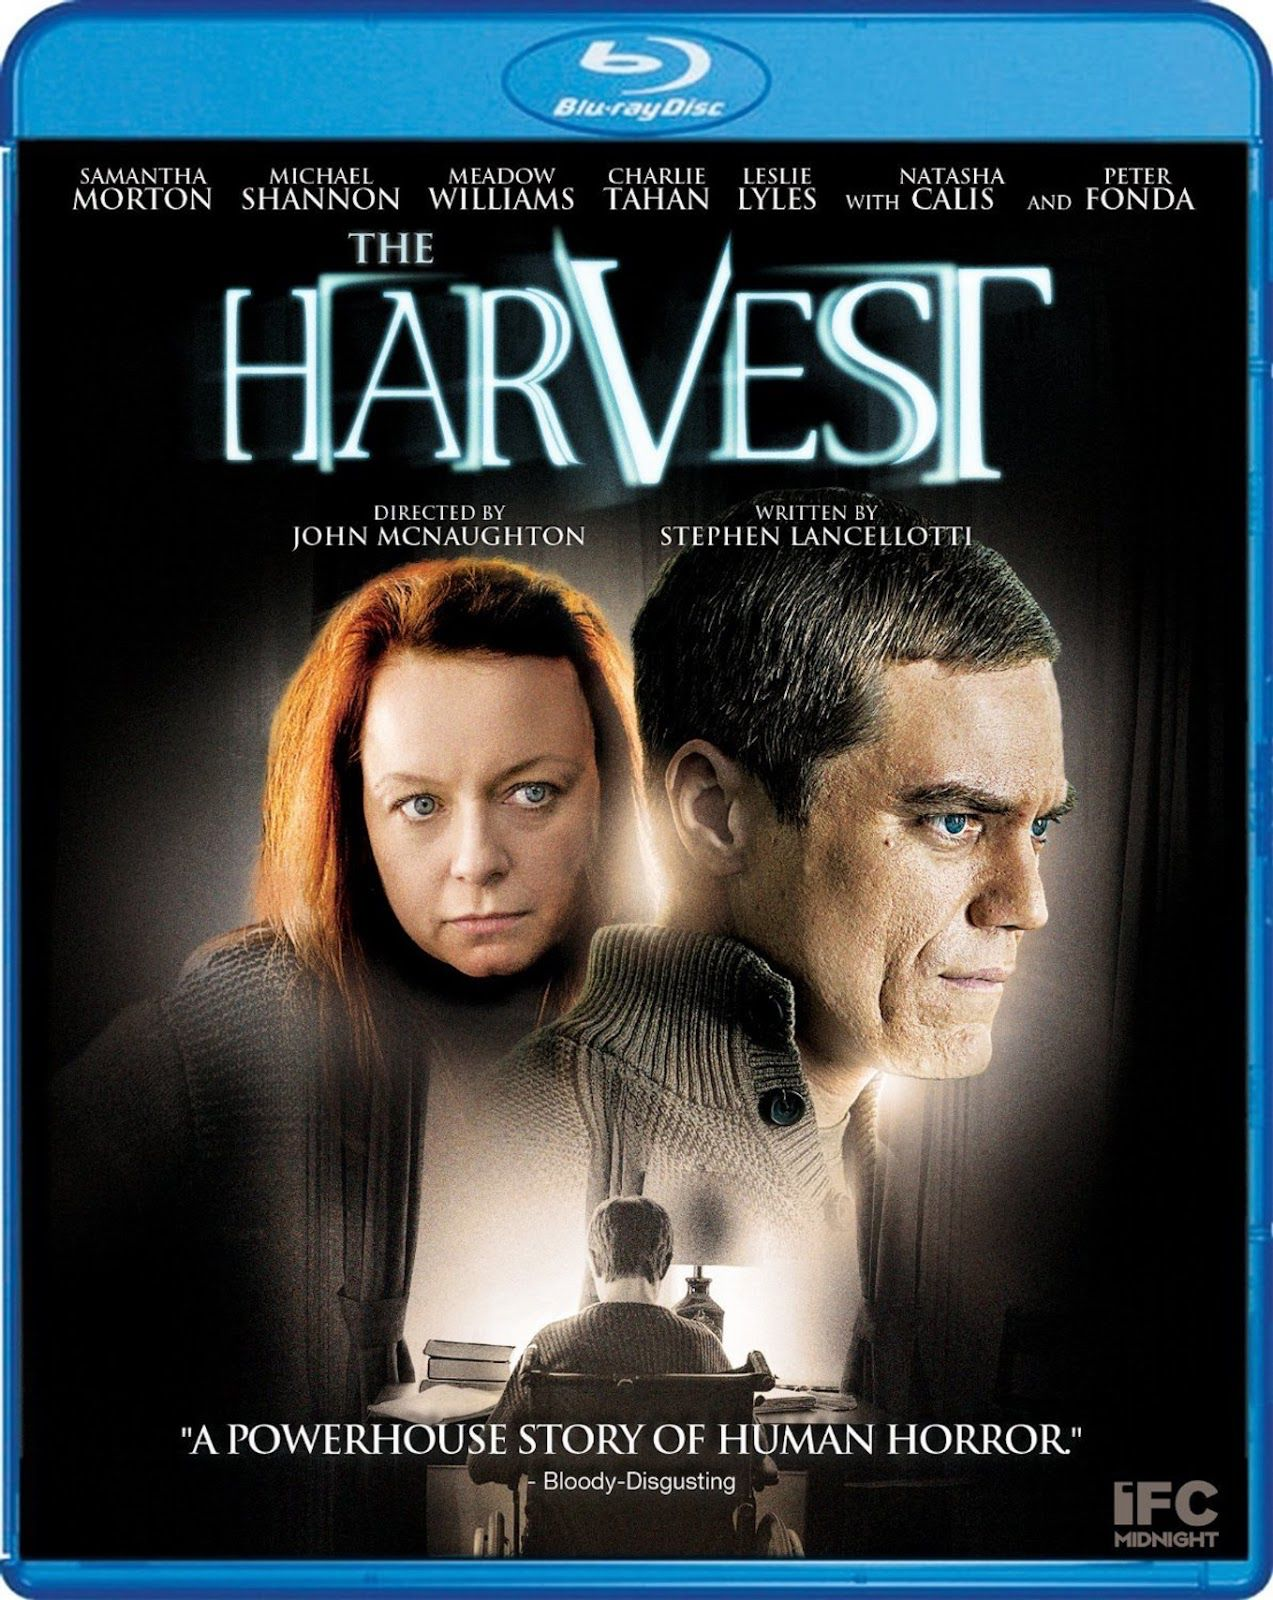 THE HARVEST BLURAY (With images) Blu ray, Blu, Michael